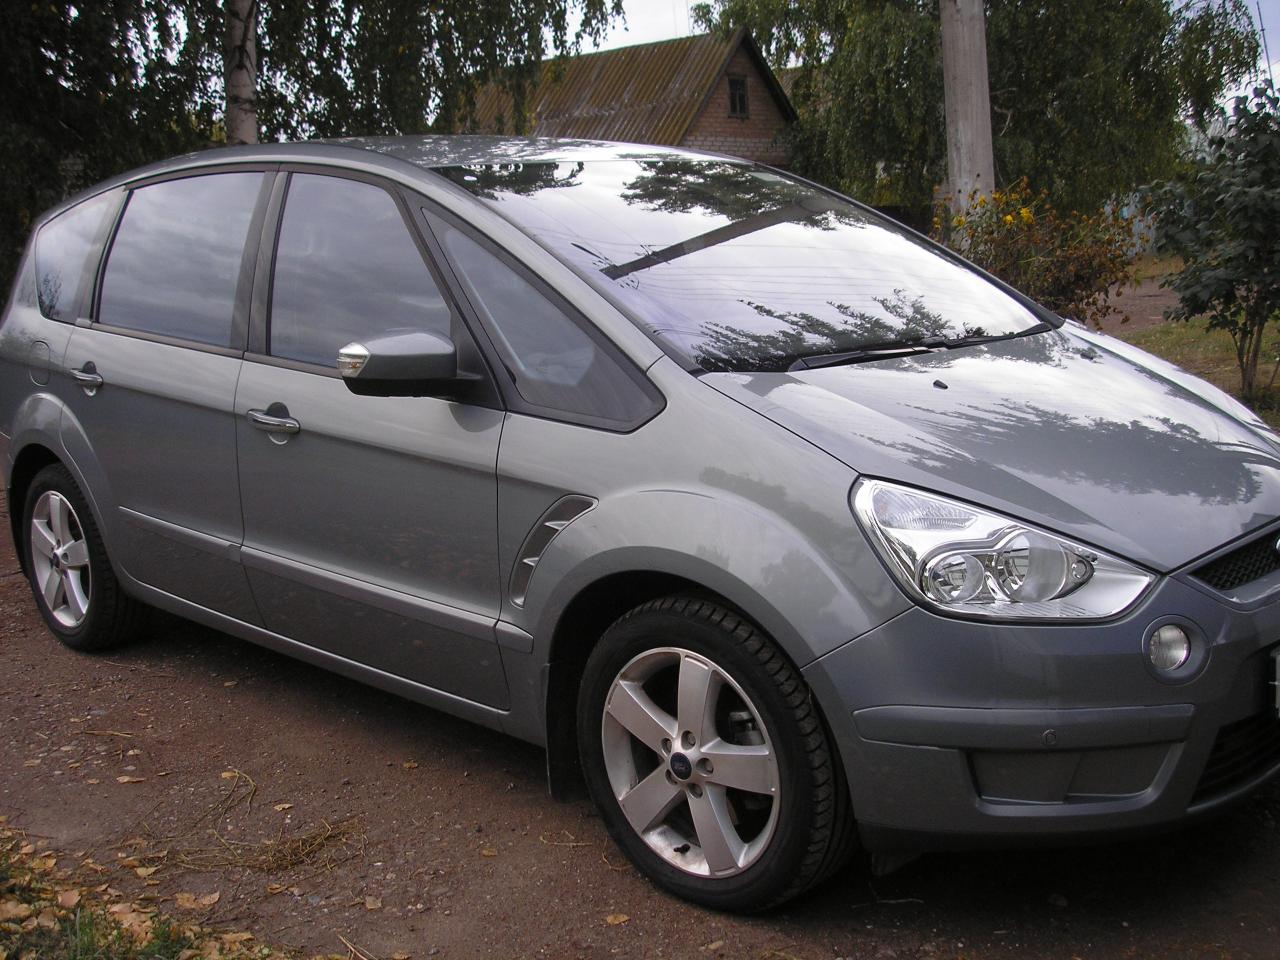 Ford S-MAX 2008 г.в. г.Уфа - фото 2